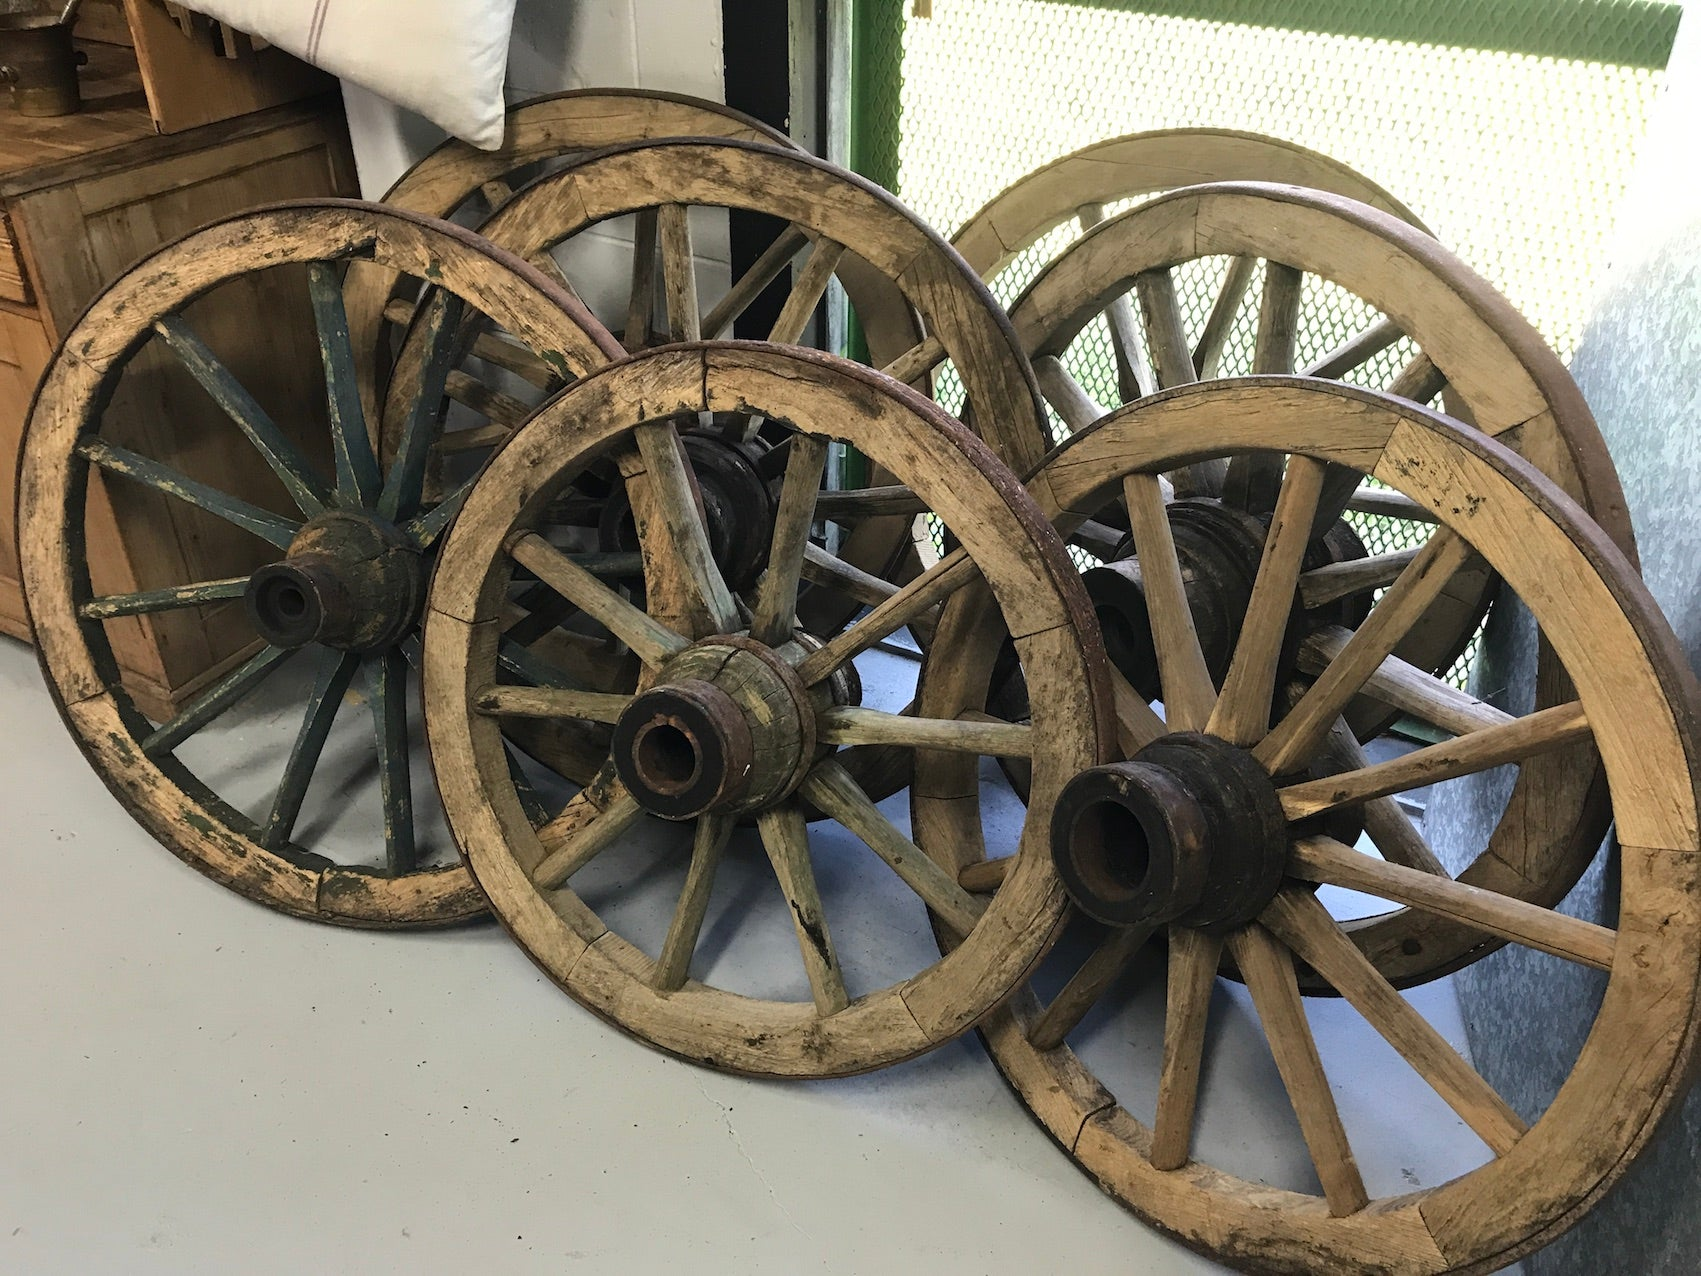 Vintage industrial European wooden wagon wheels #2127 in byron